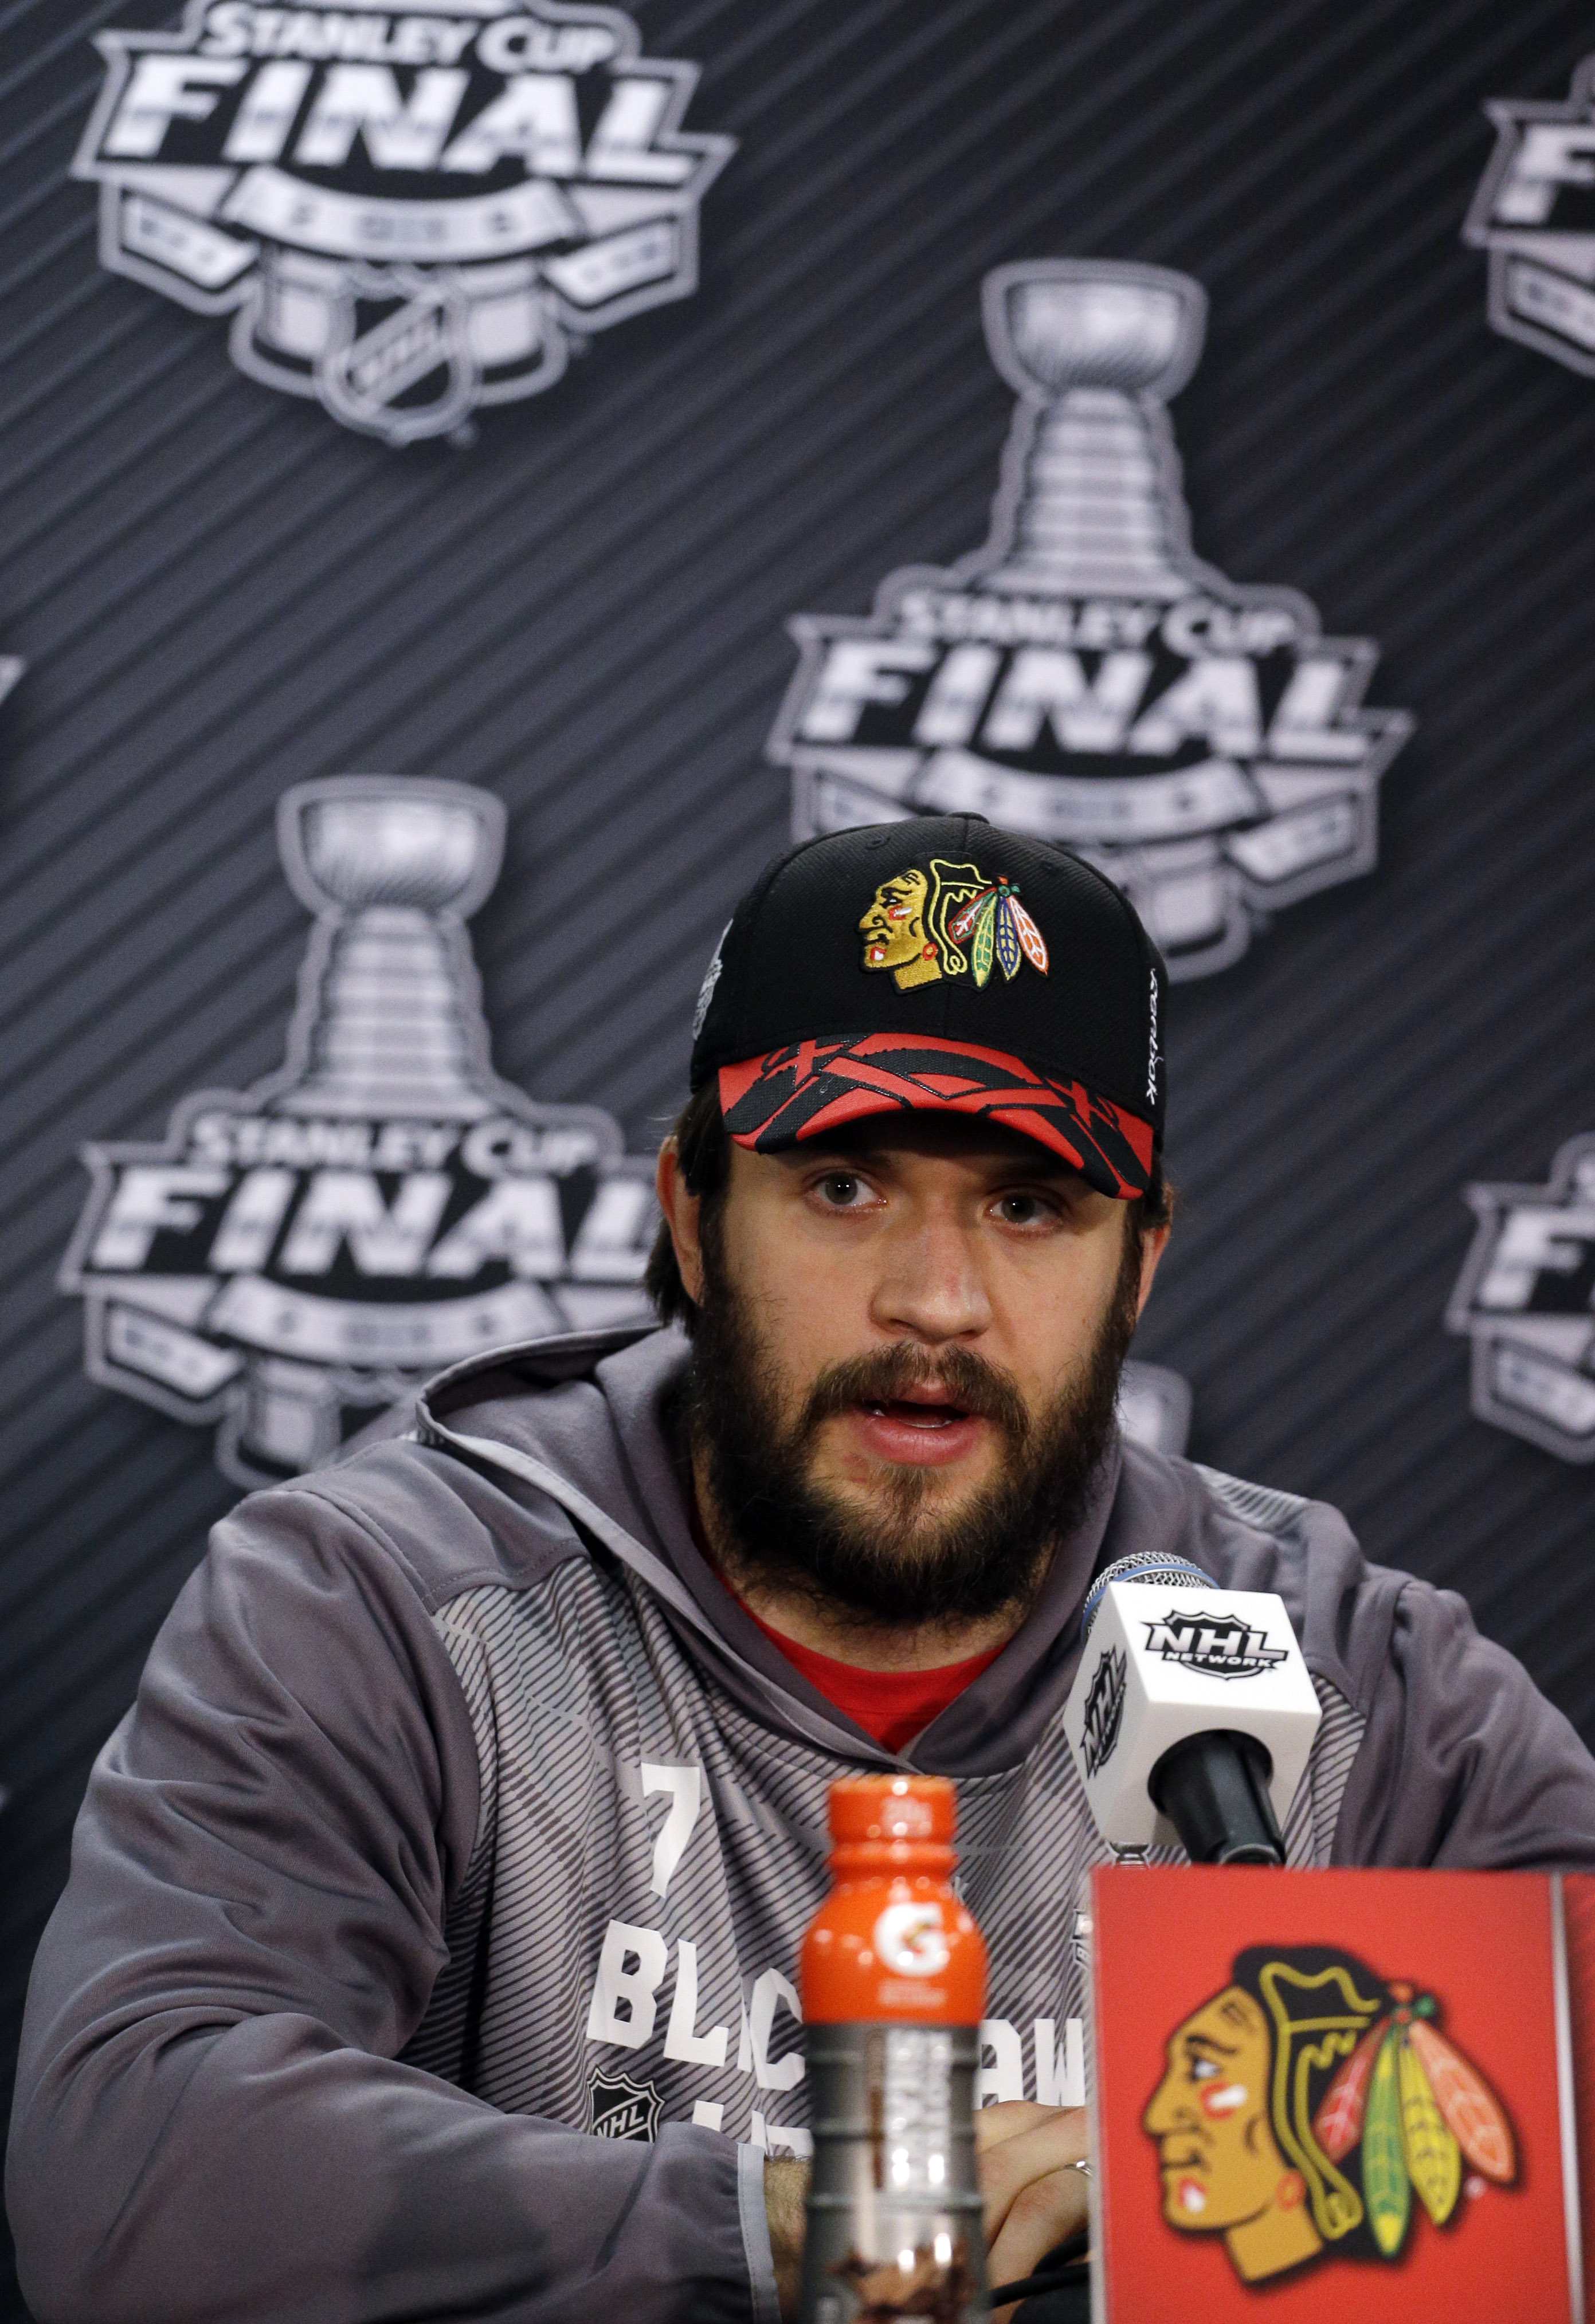 Chicago Blackhawks defenseman Brent Seabrook talks during a news conference at the NHL hockey Stanley Cup Final, Sunday, June 14, 2015, in Chicago. Chicago Blackhawks now leads the series 3-2 and has the opportunity to win the Cup at home for the first ti